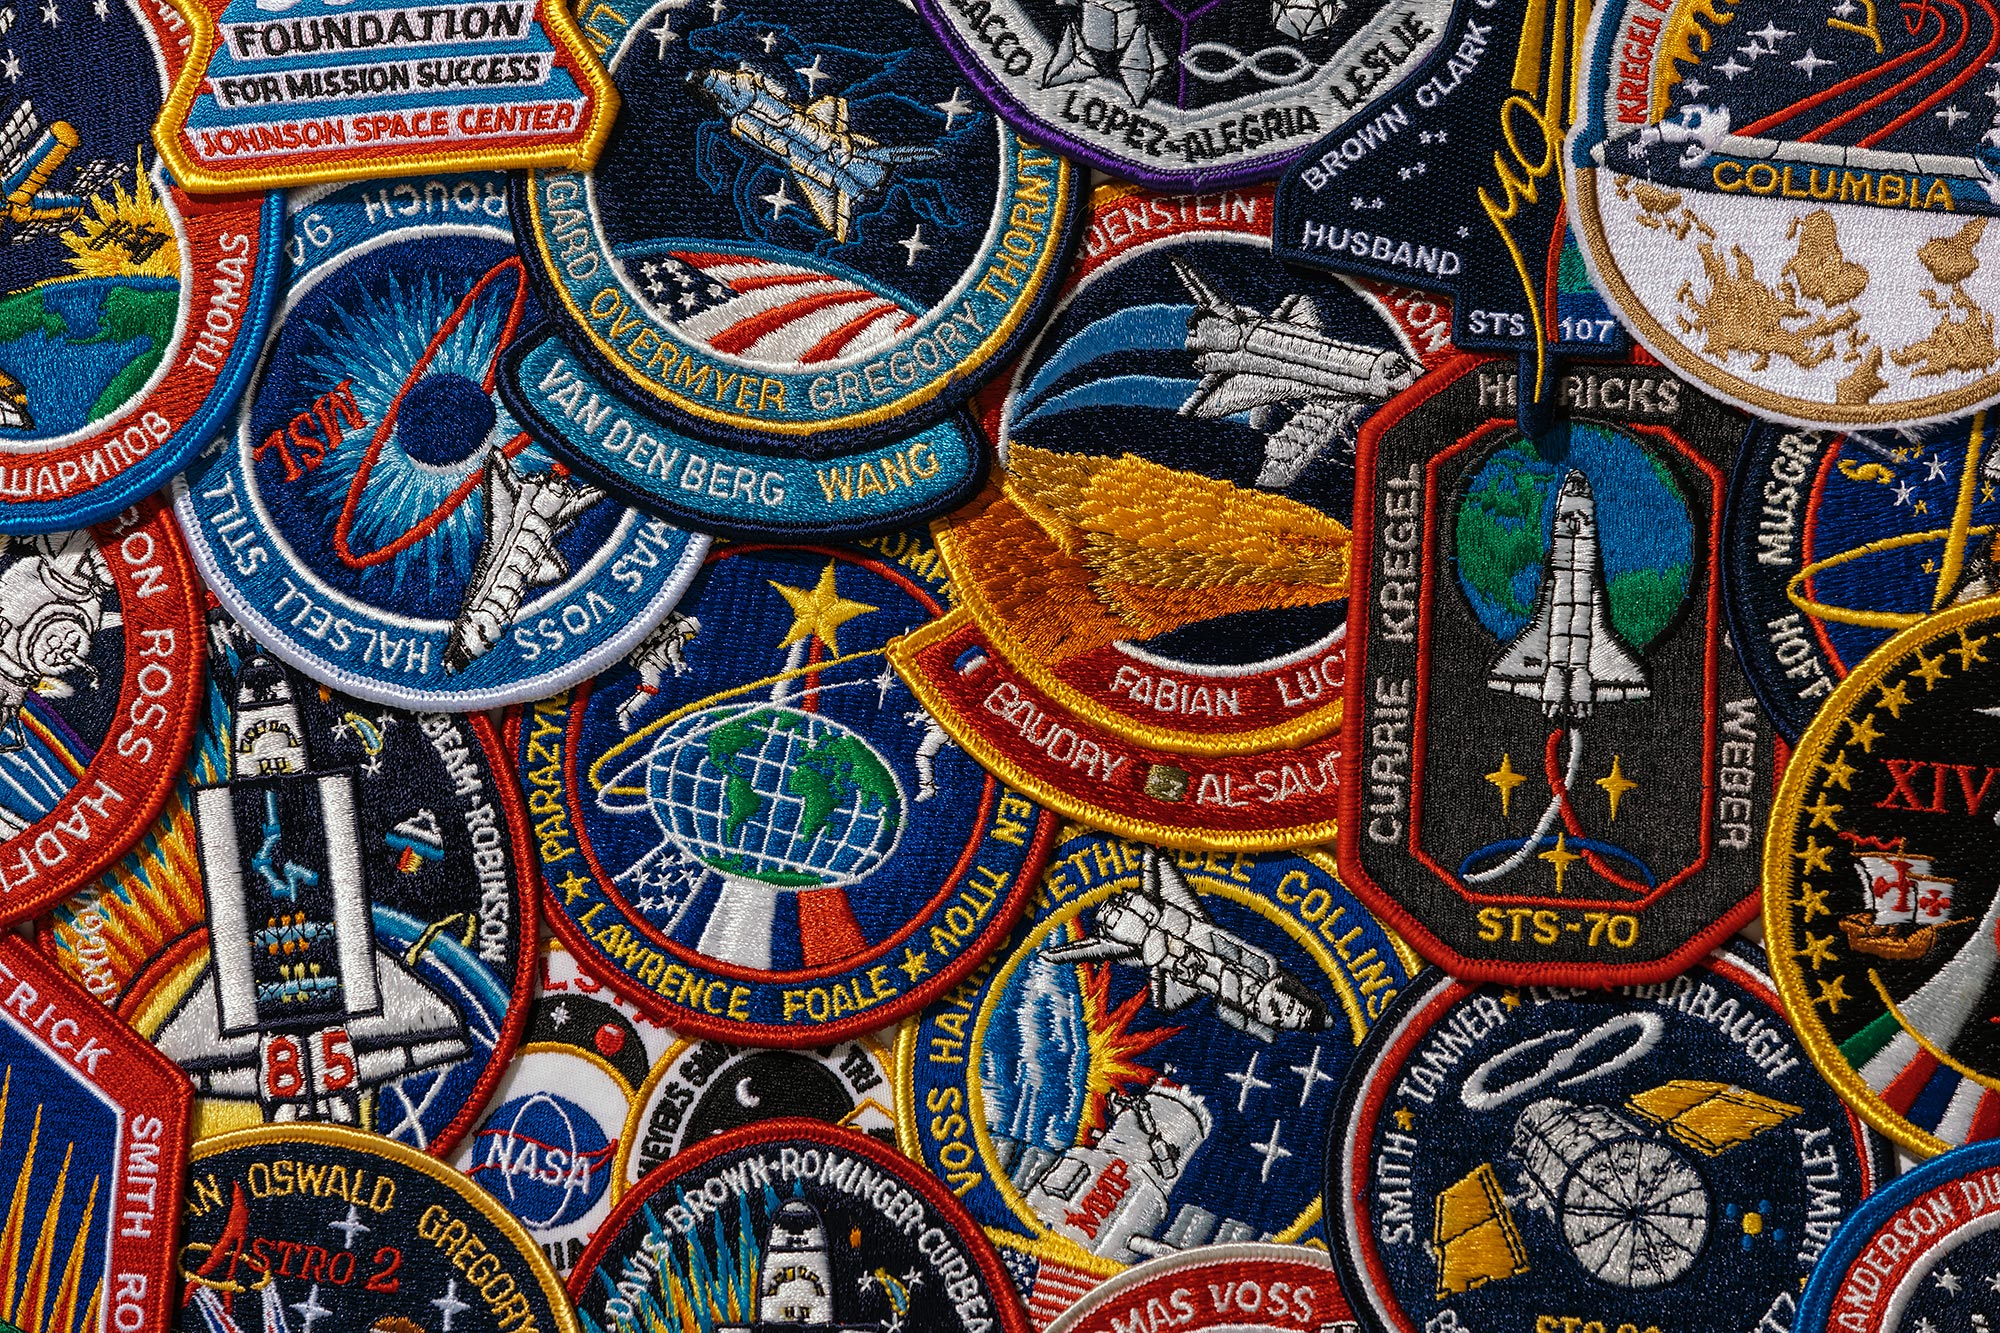 A grouping of space-flown official mission patches from past NASA space missions owned and photographed by Todd Spoth.